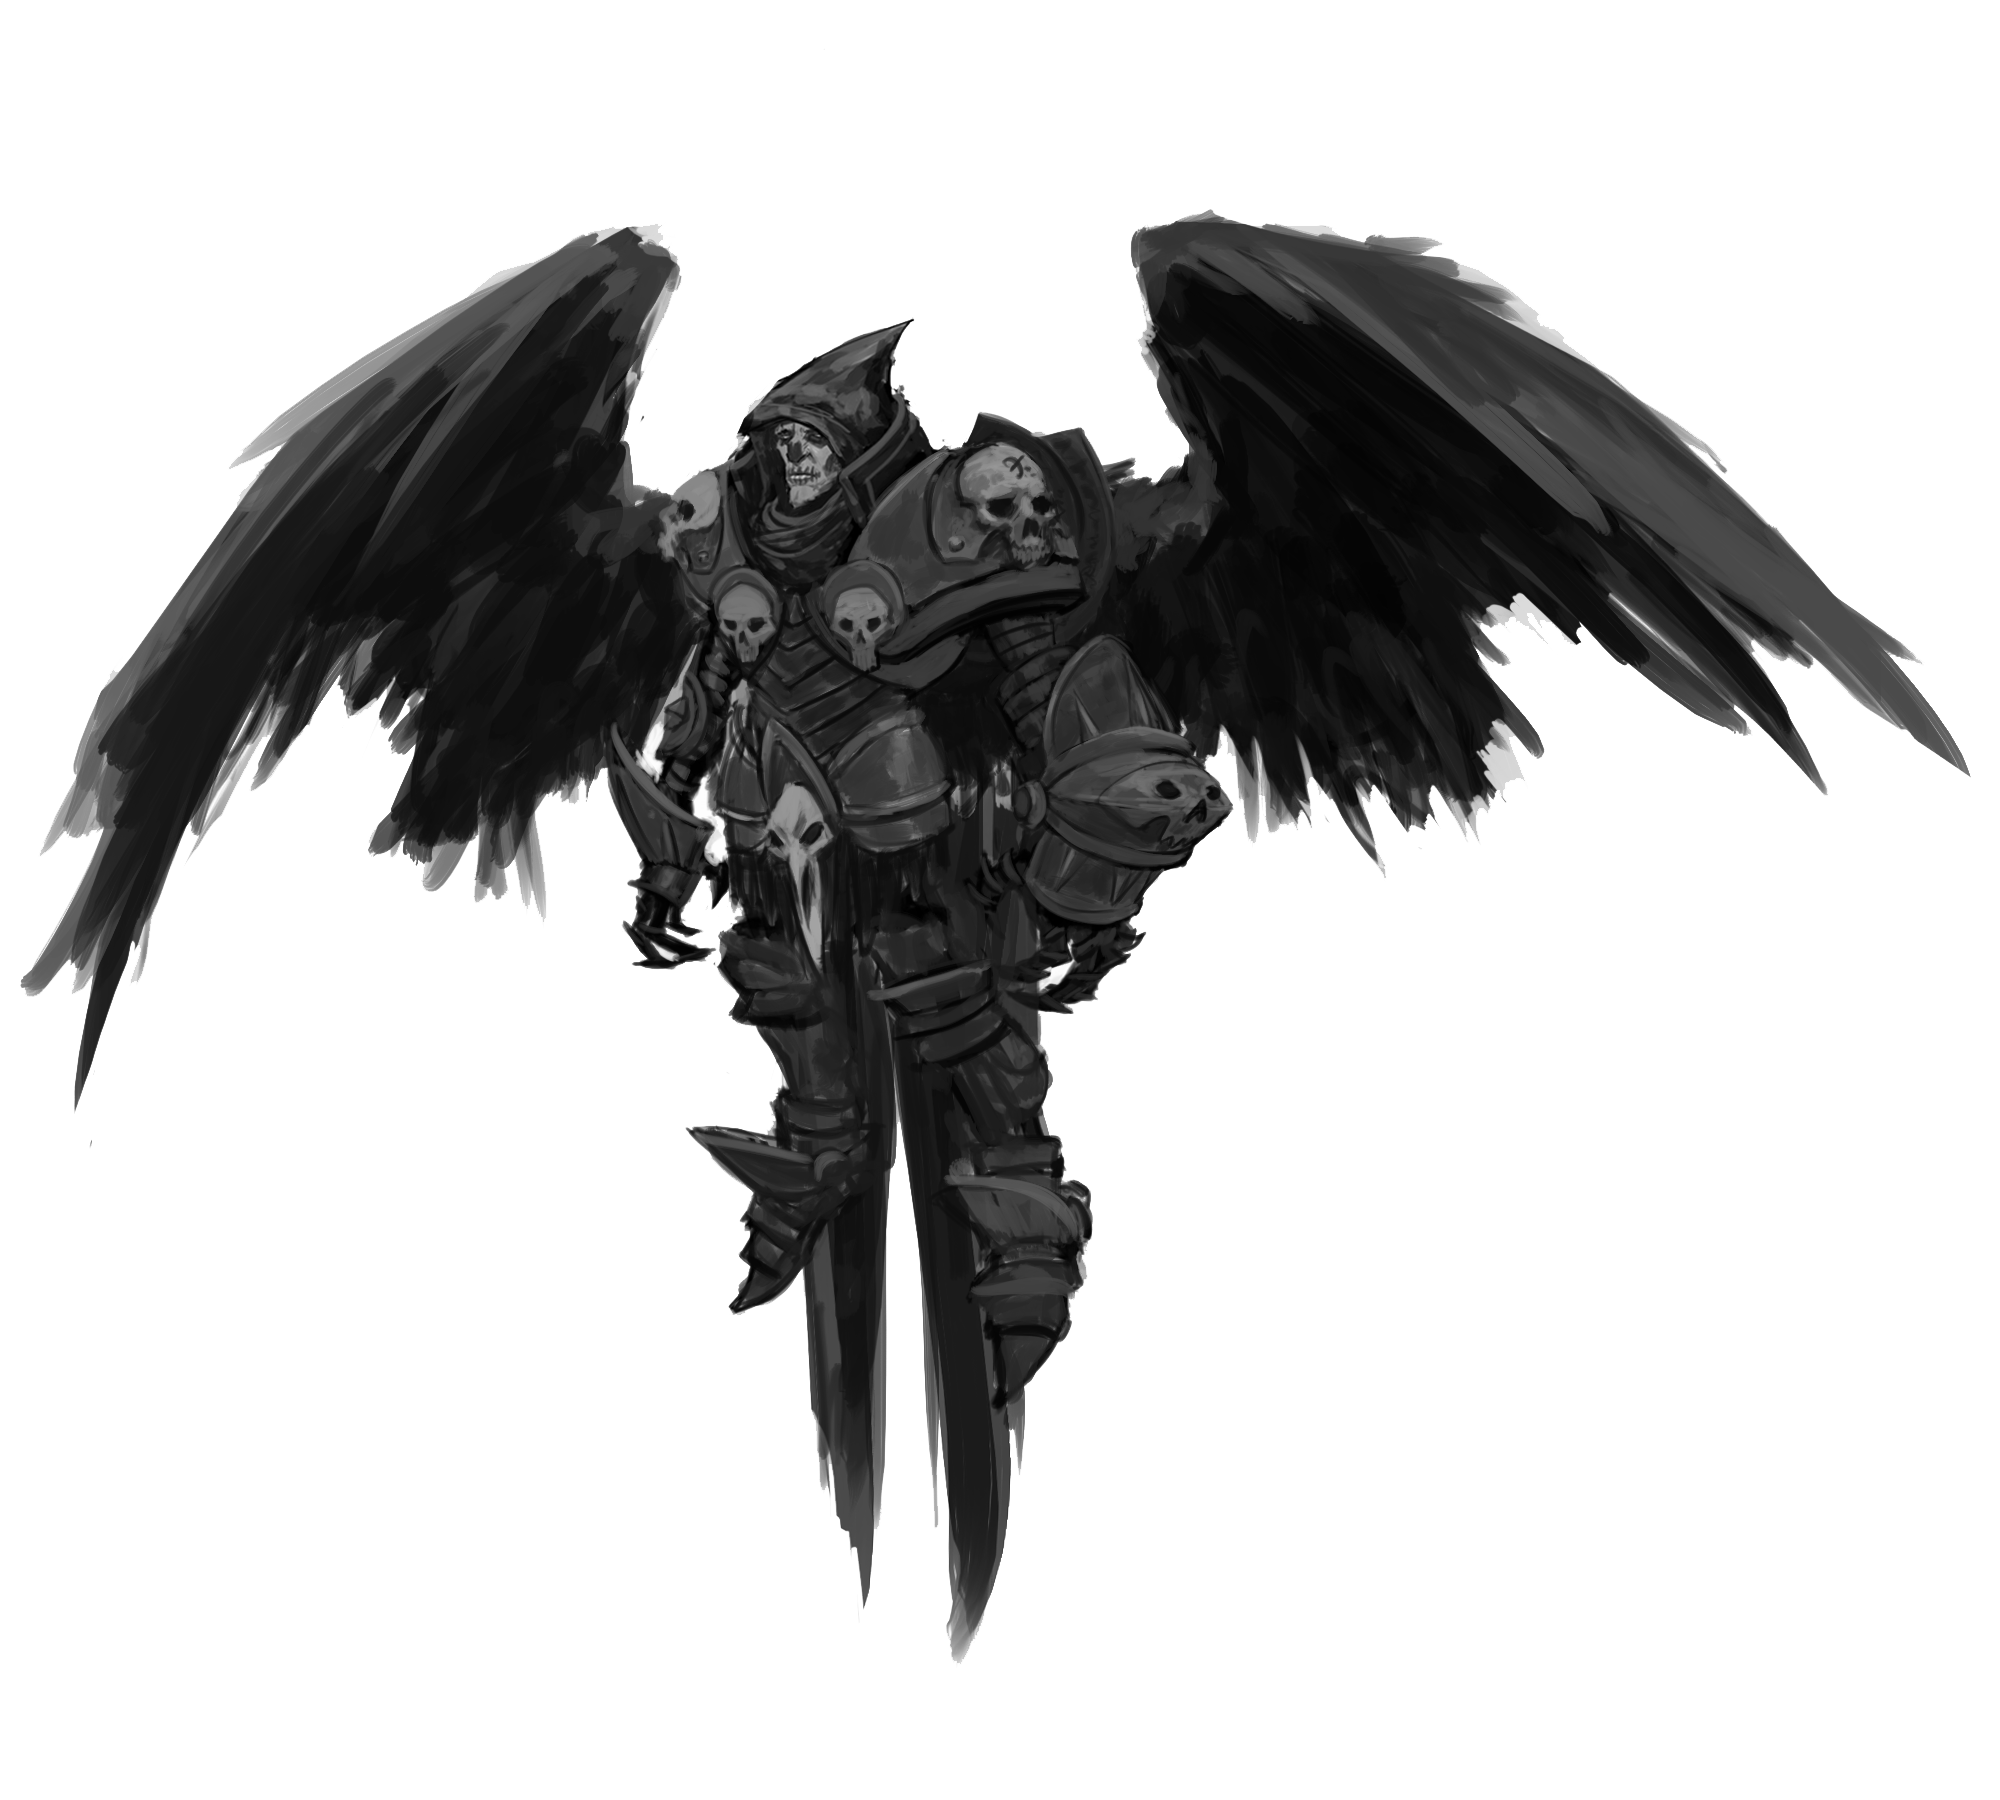 Evil angel png. Dark images what is